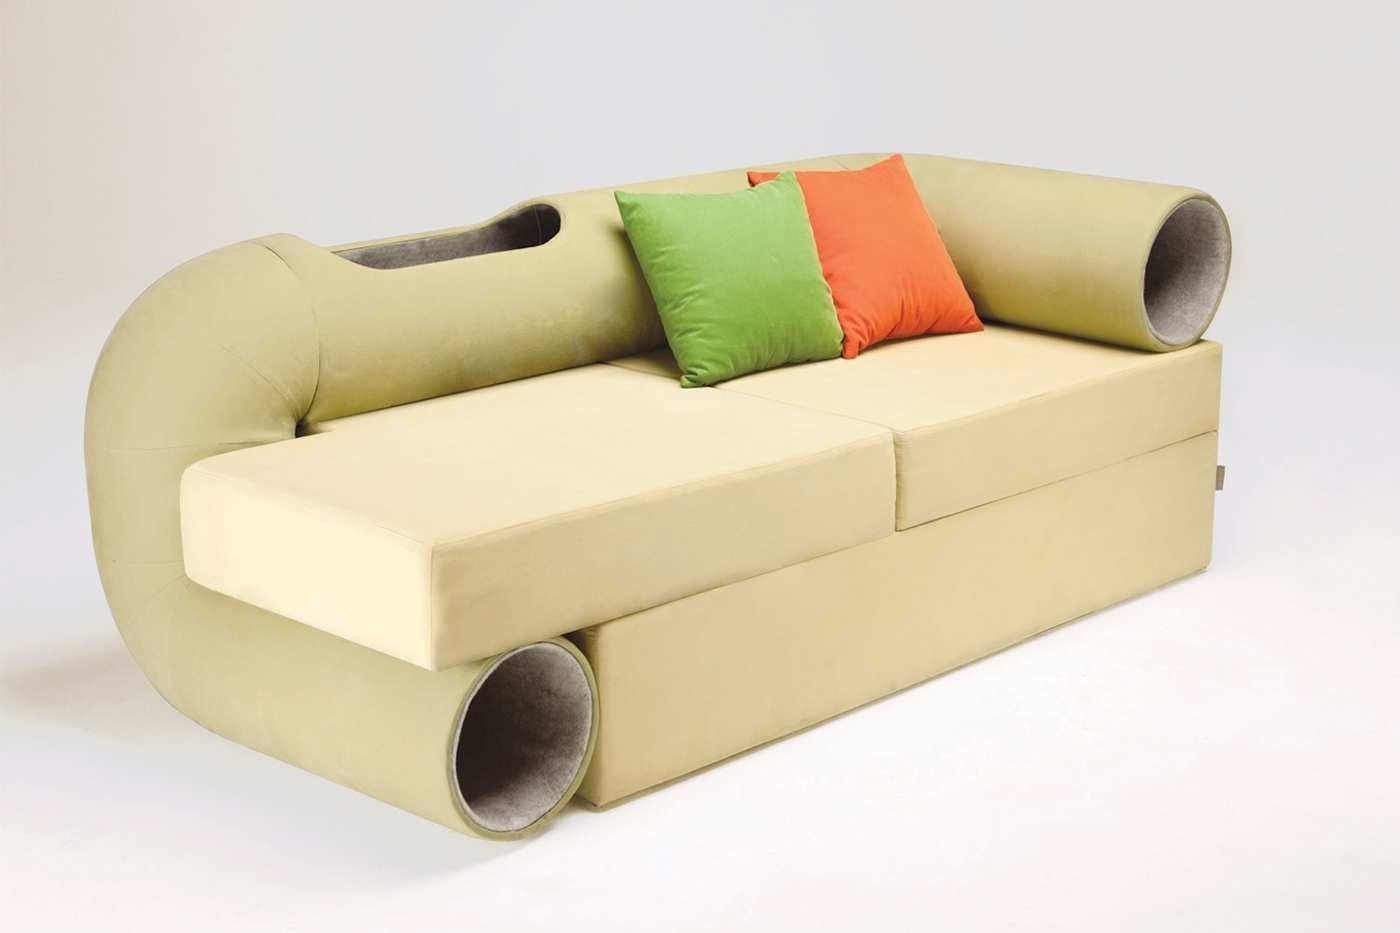 Cat Tunnel Sofa With Inspiration Hd Gallery 5062 | Kengire Within Cat Tunnel Couches (Image 15 of 20)